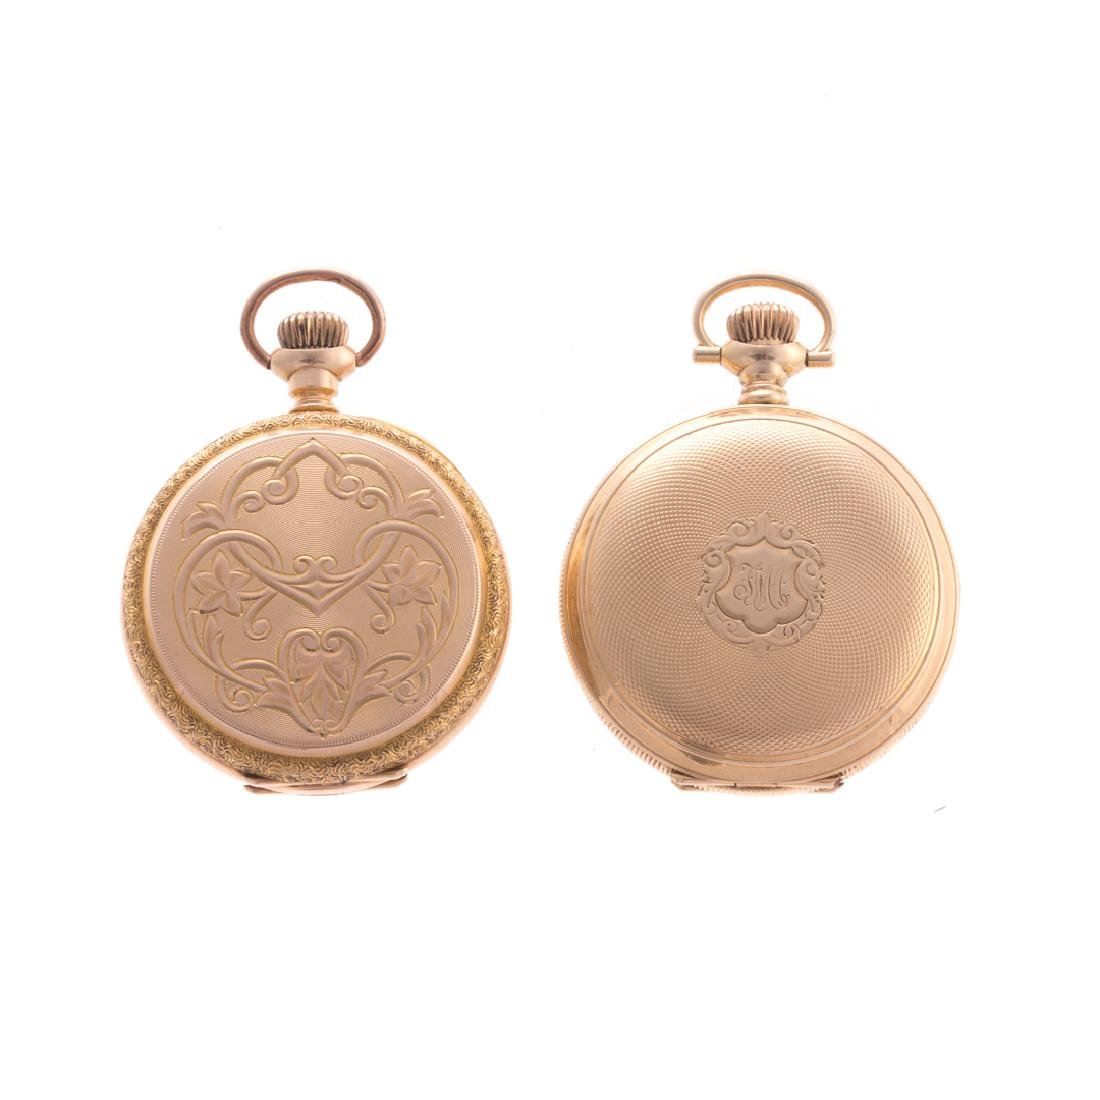 A Pair of Lovely Elgin Pocket Watches in 14K Gold